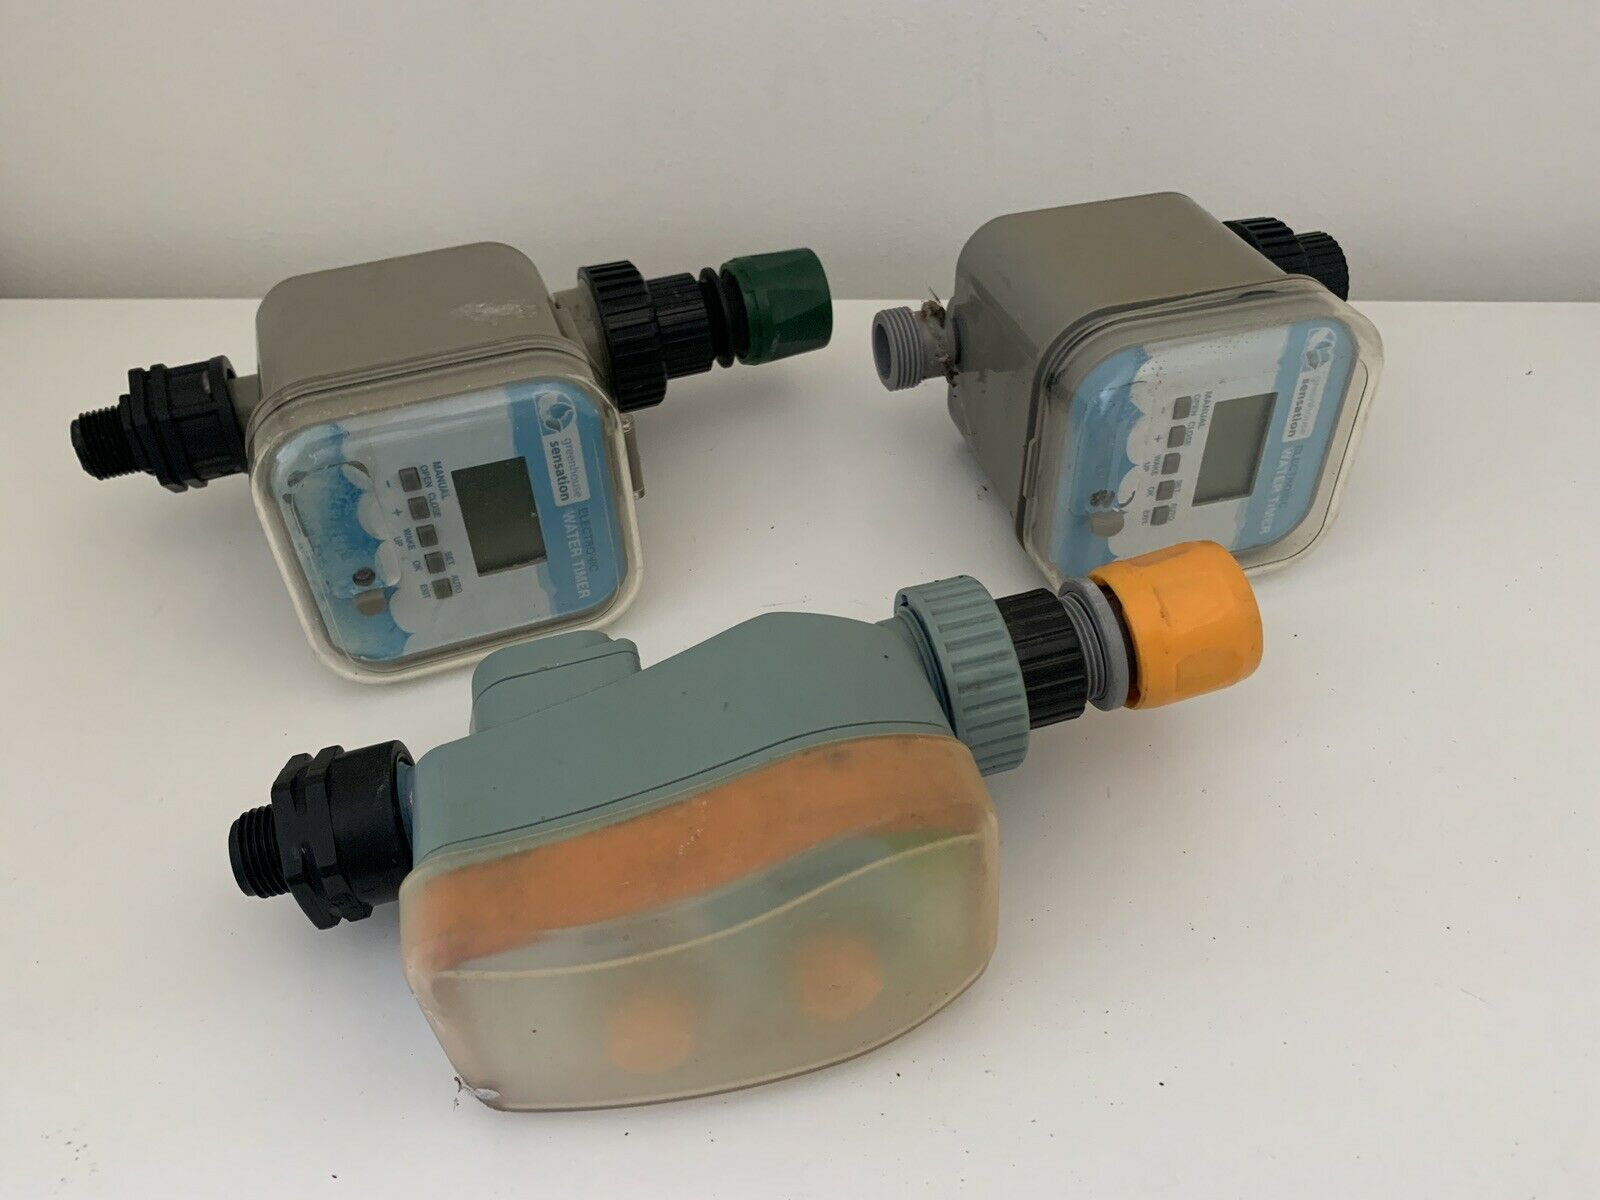 3 x Greenhouse Sensation Click & Drip timers for Waterbutt Spares or Repairs